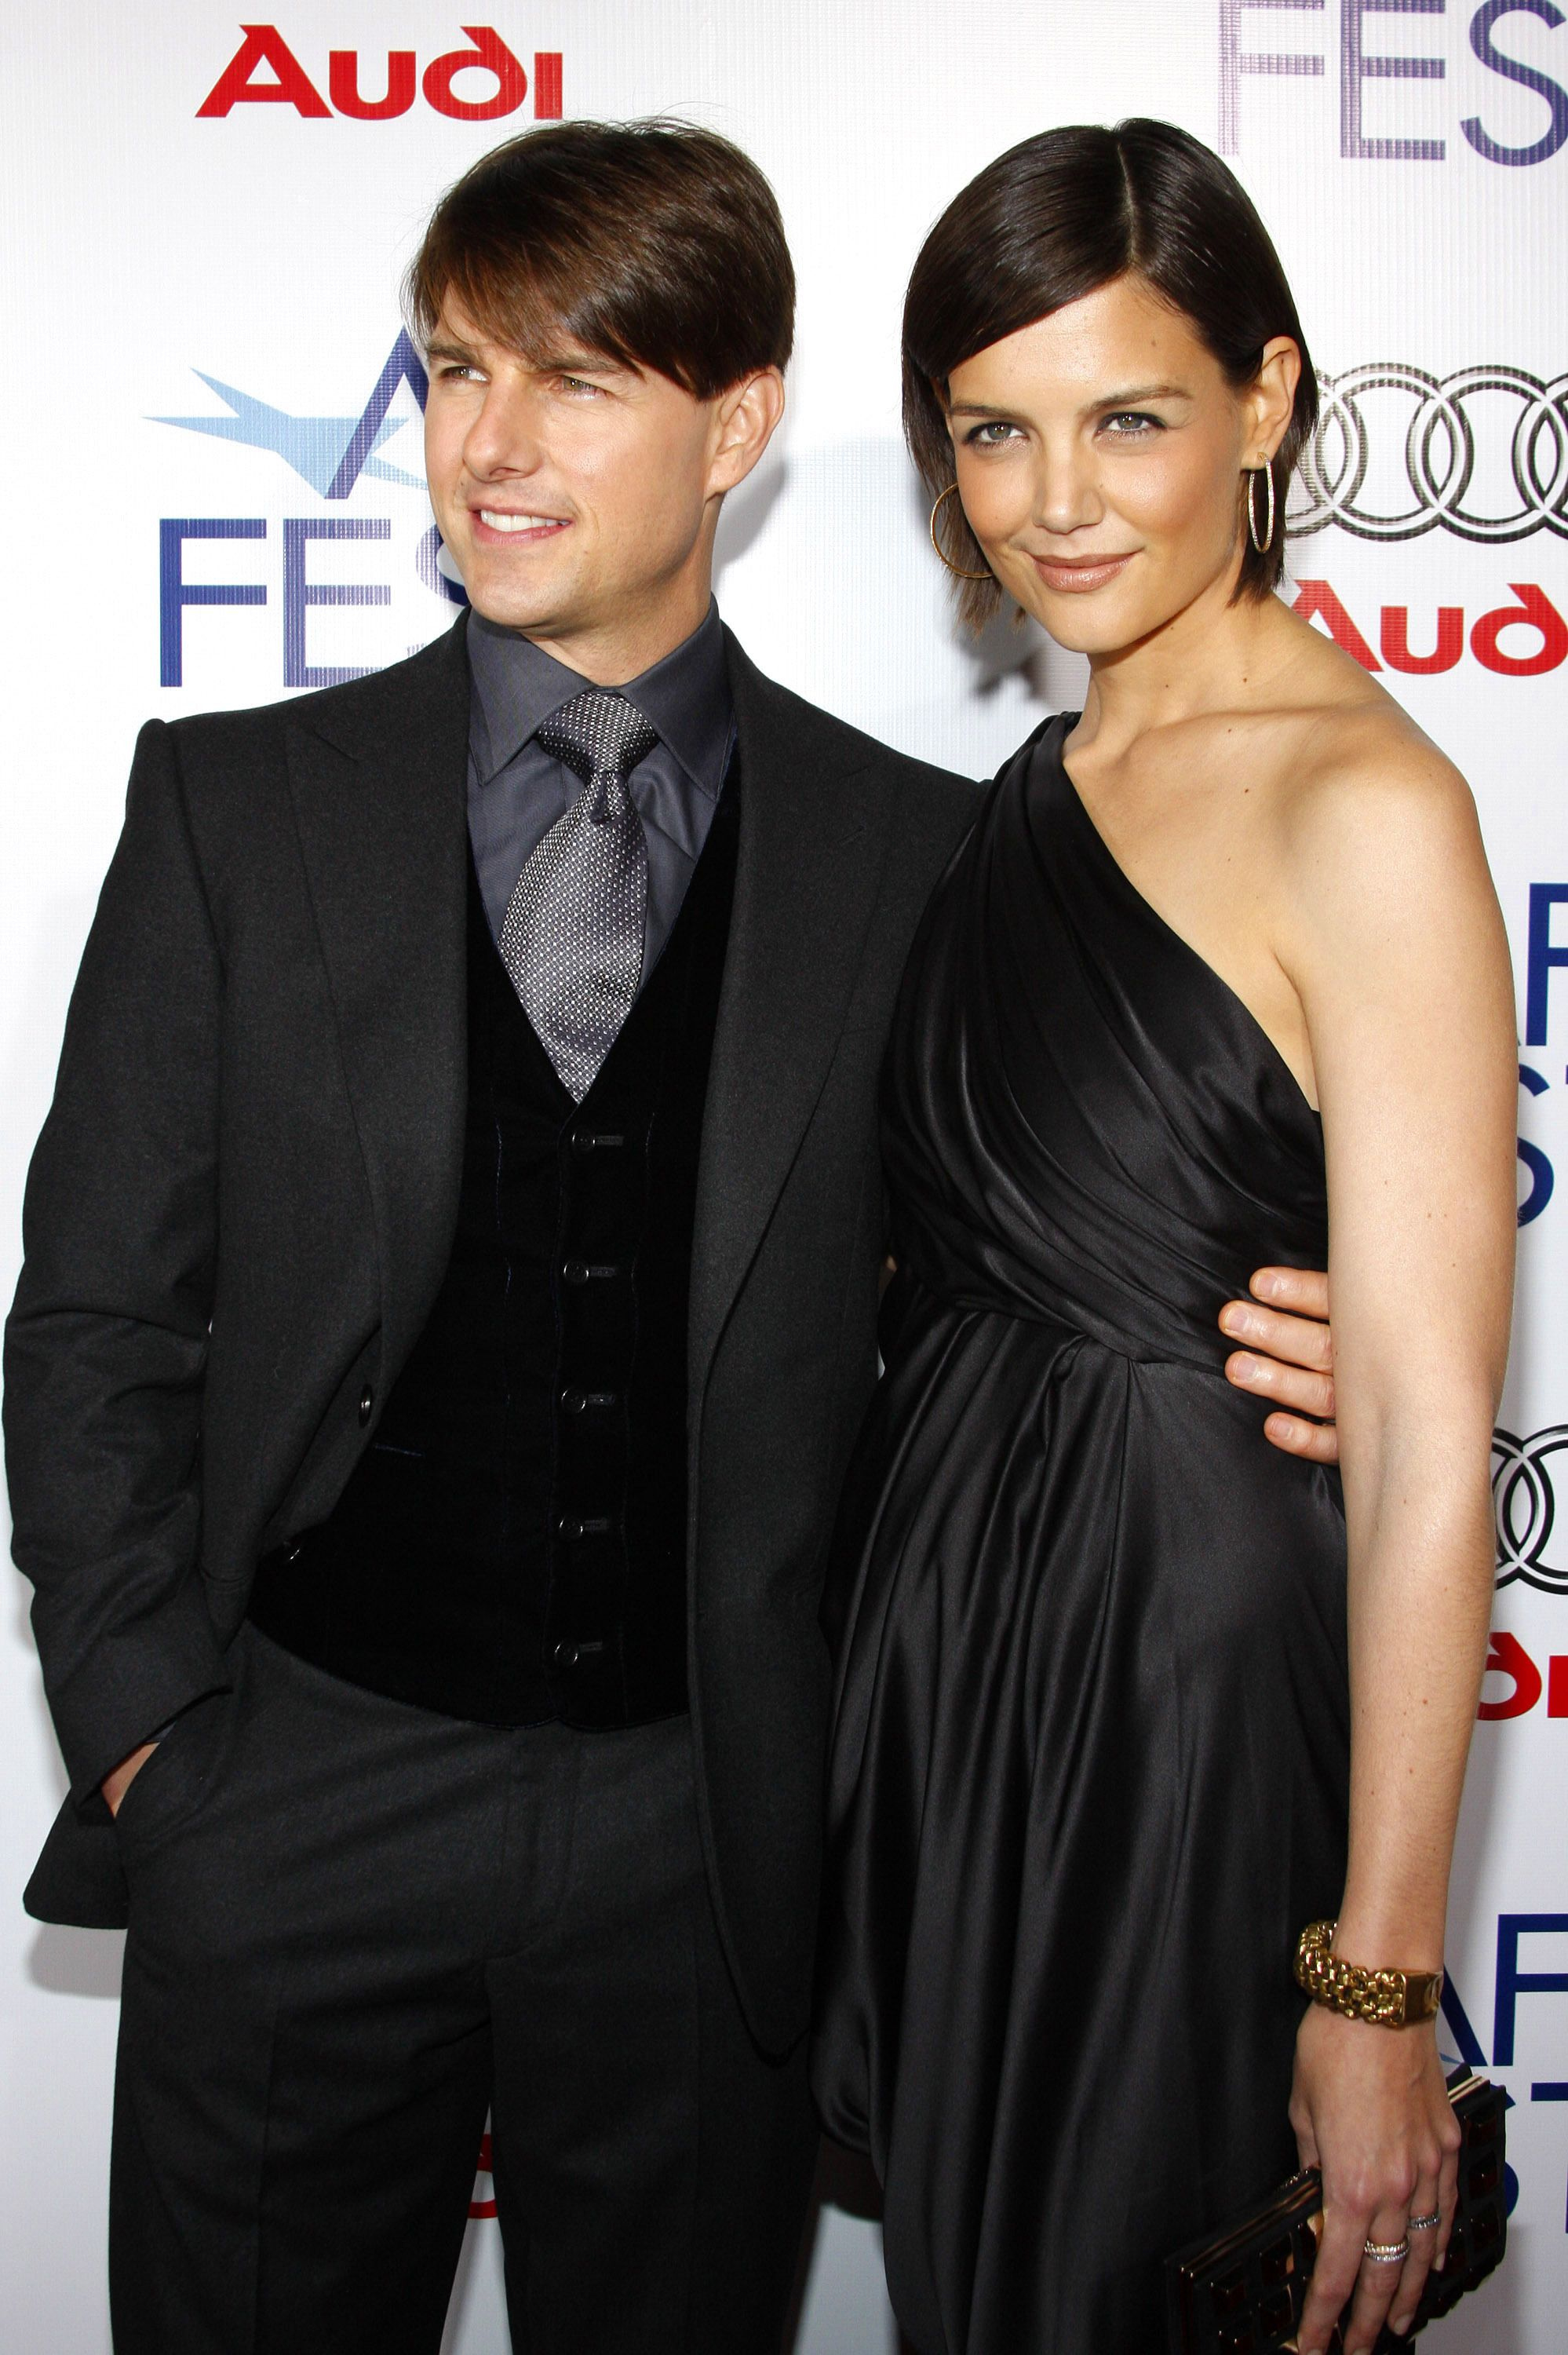 10. Tom Cruise and Katie Holmes